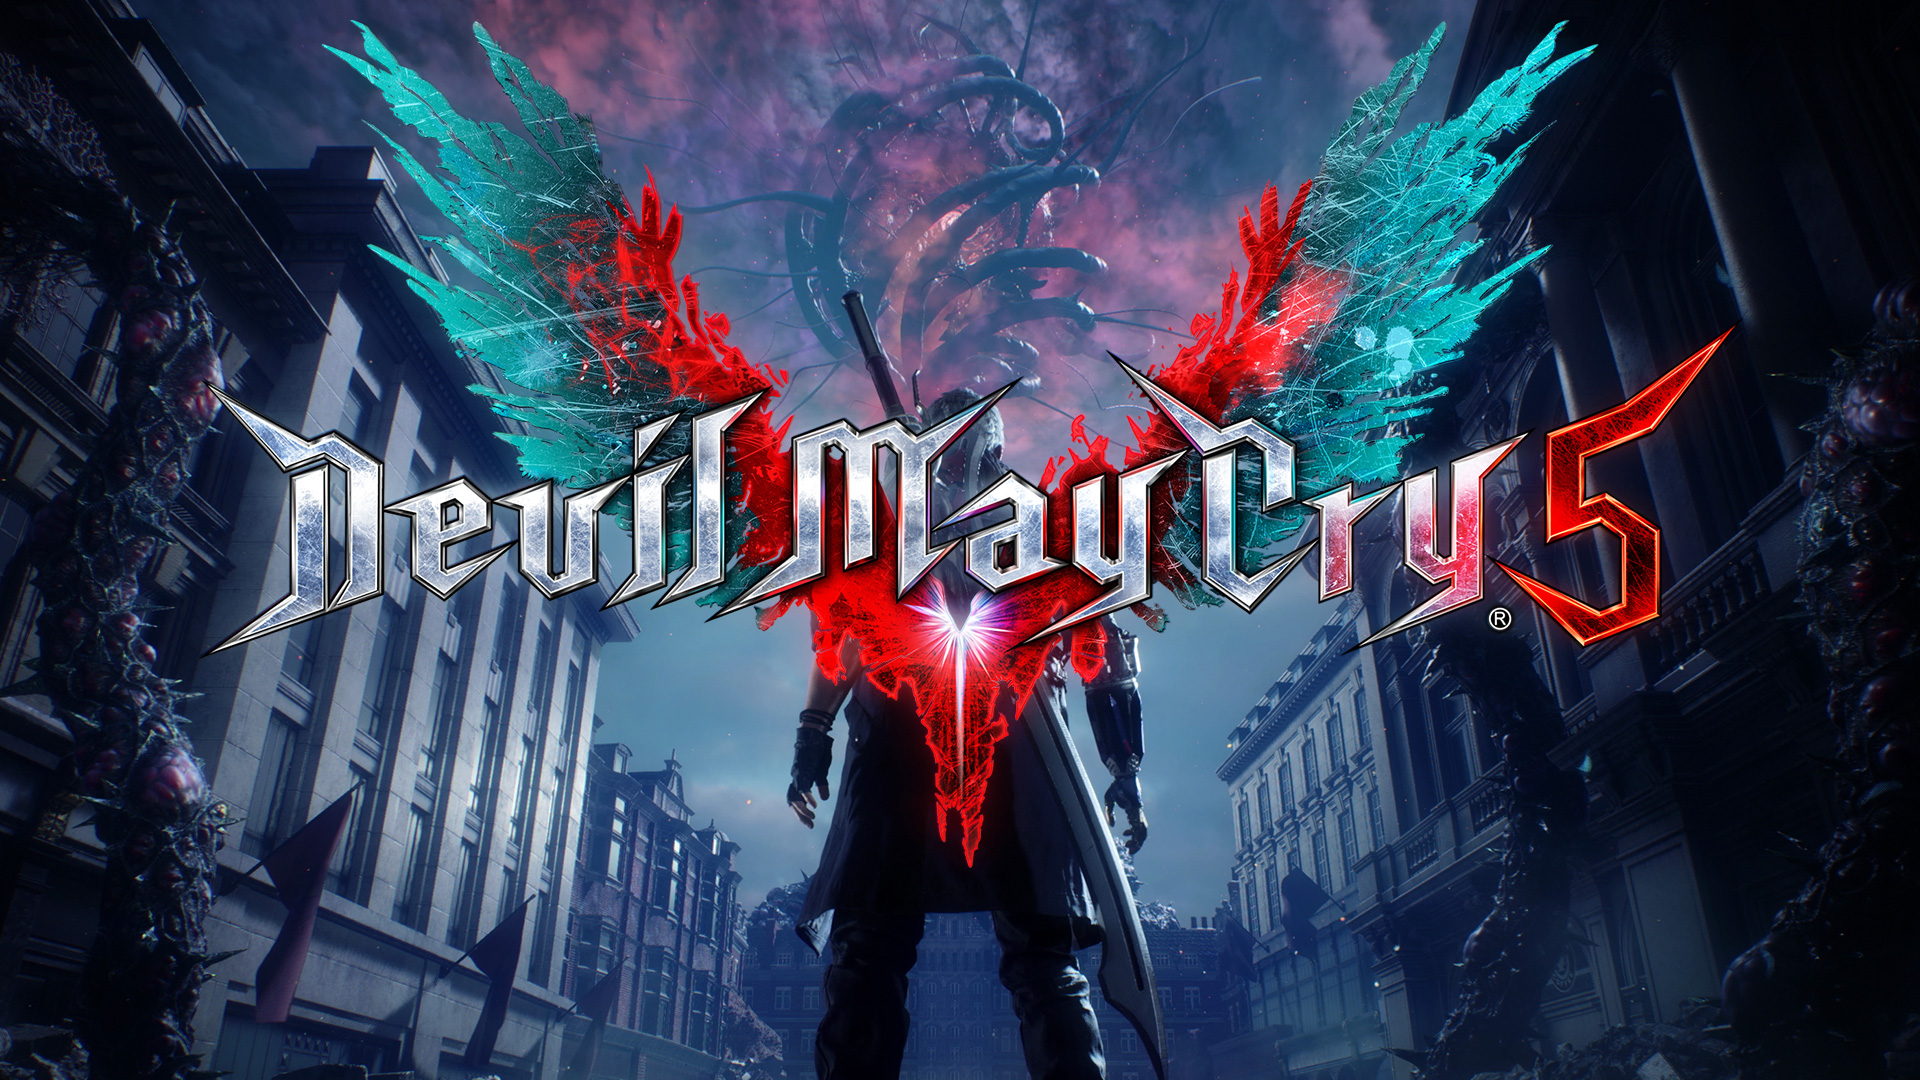 Play; Devil May Cry 5, Nero looking down a city block